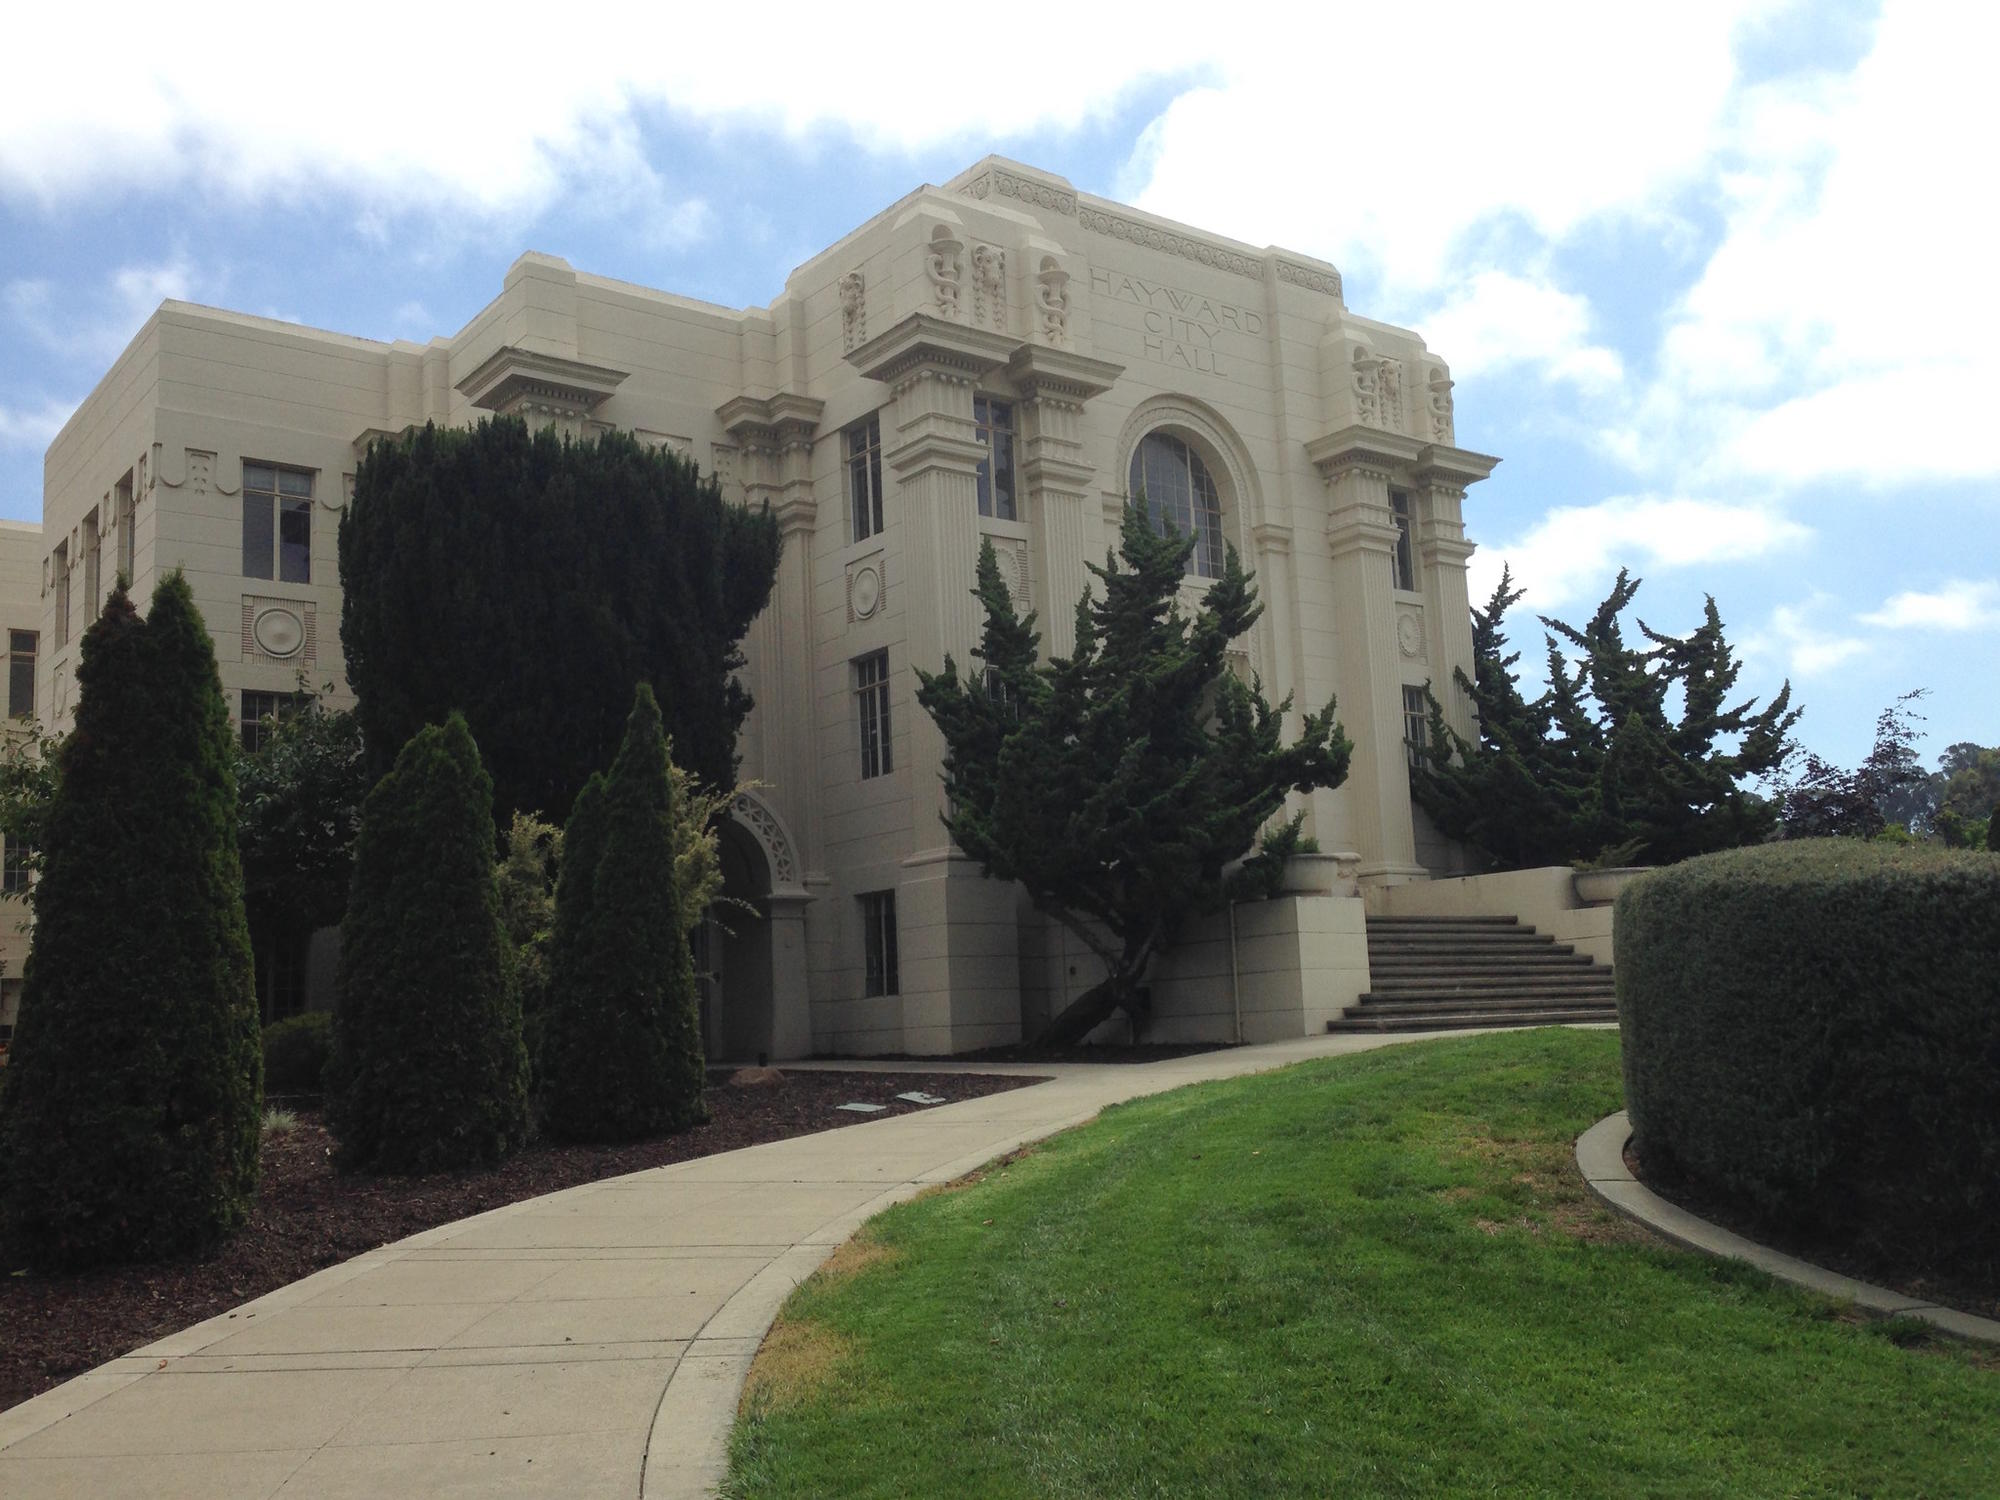 The historic Hayward City Hall was closed because it sits directly on top of the Hayward fault, which is pulling the building apart.